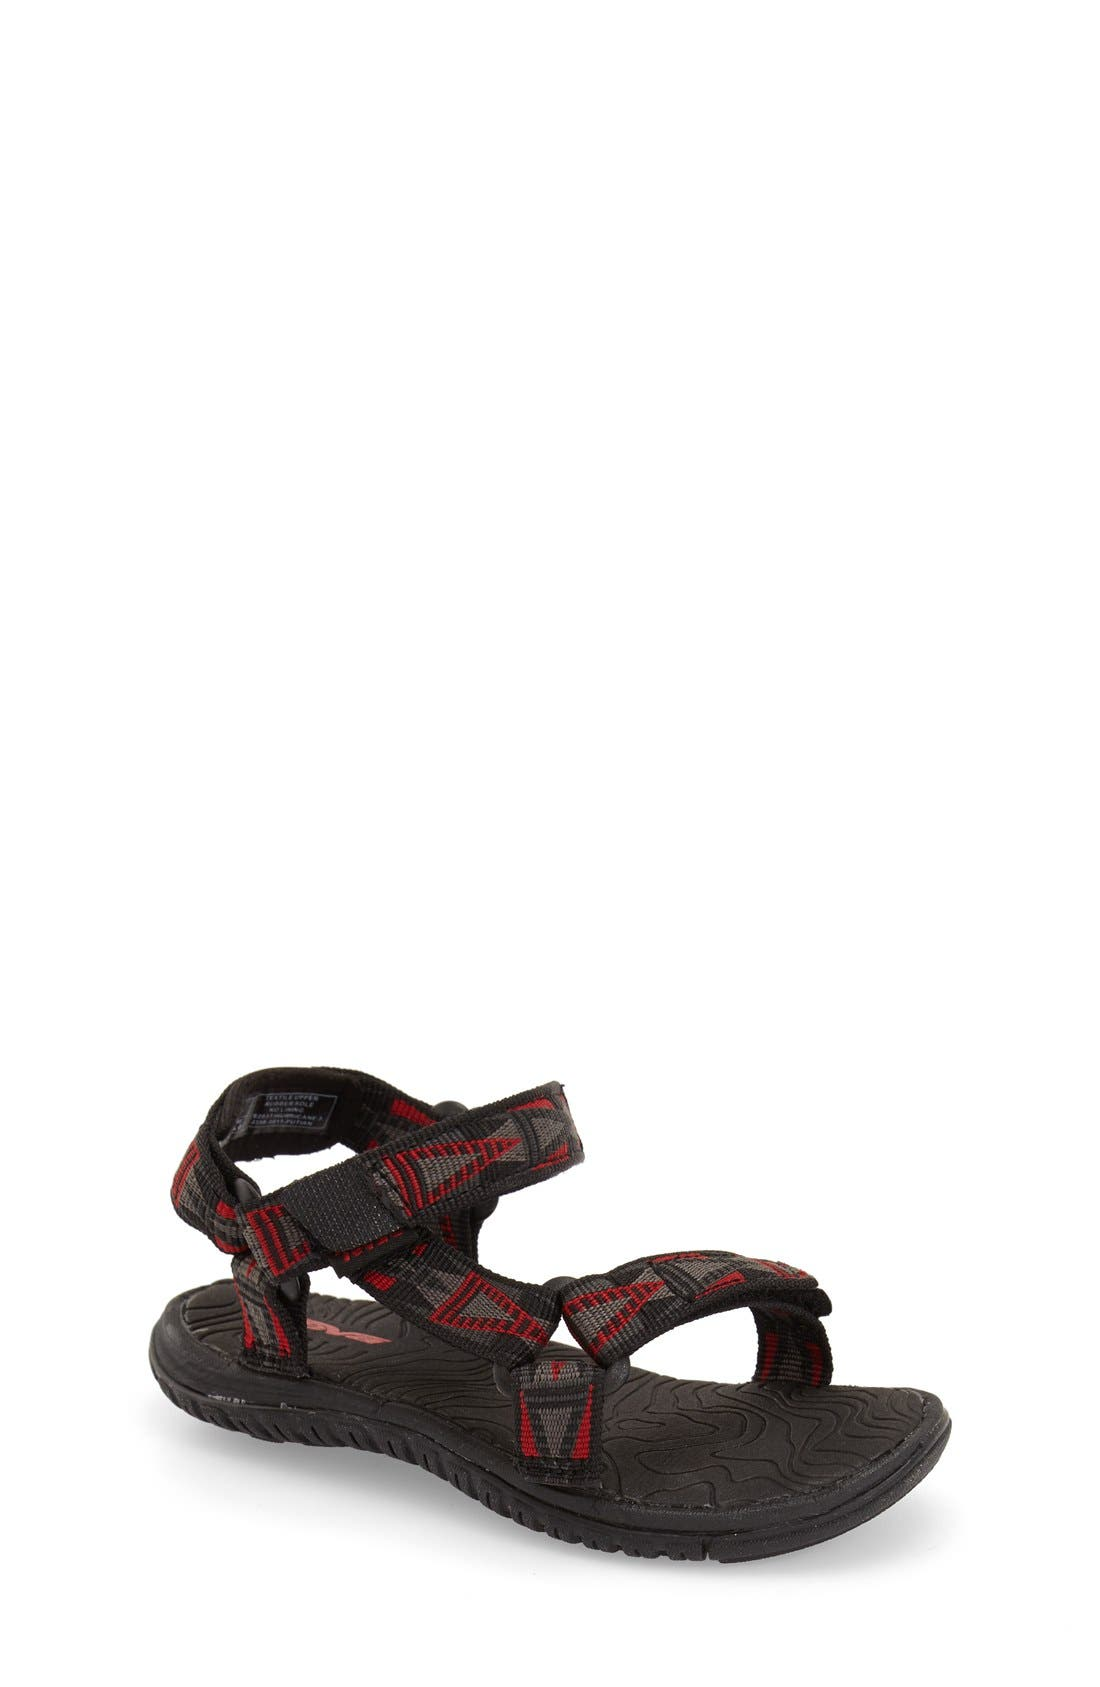 'Hurricane 3' Sport Sandal,                         Main,                         color, 003